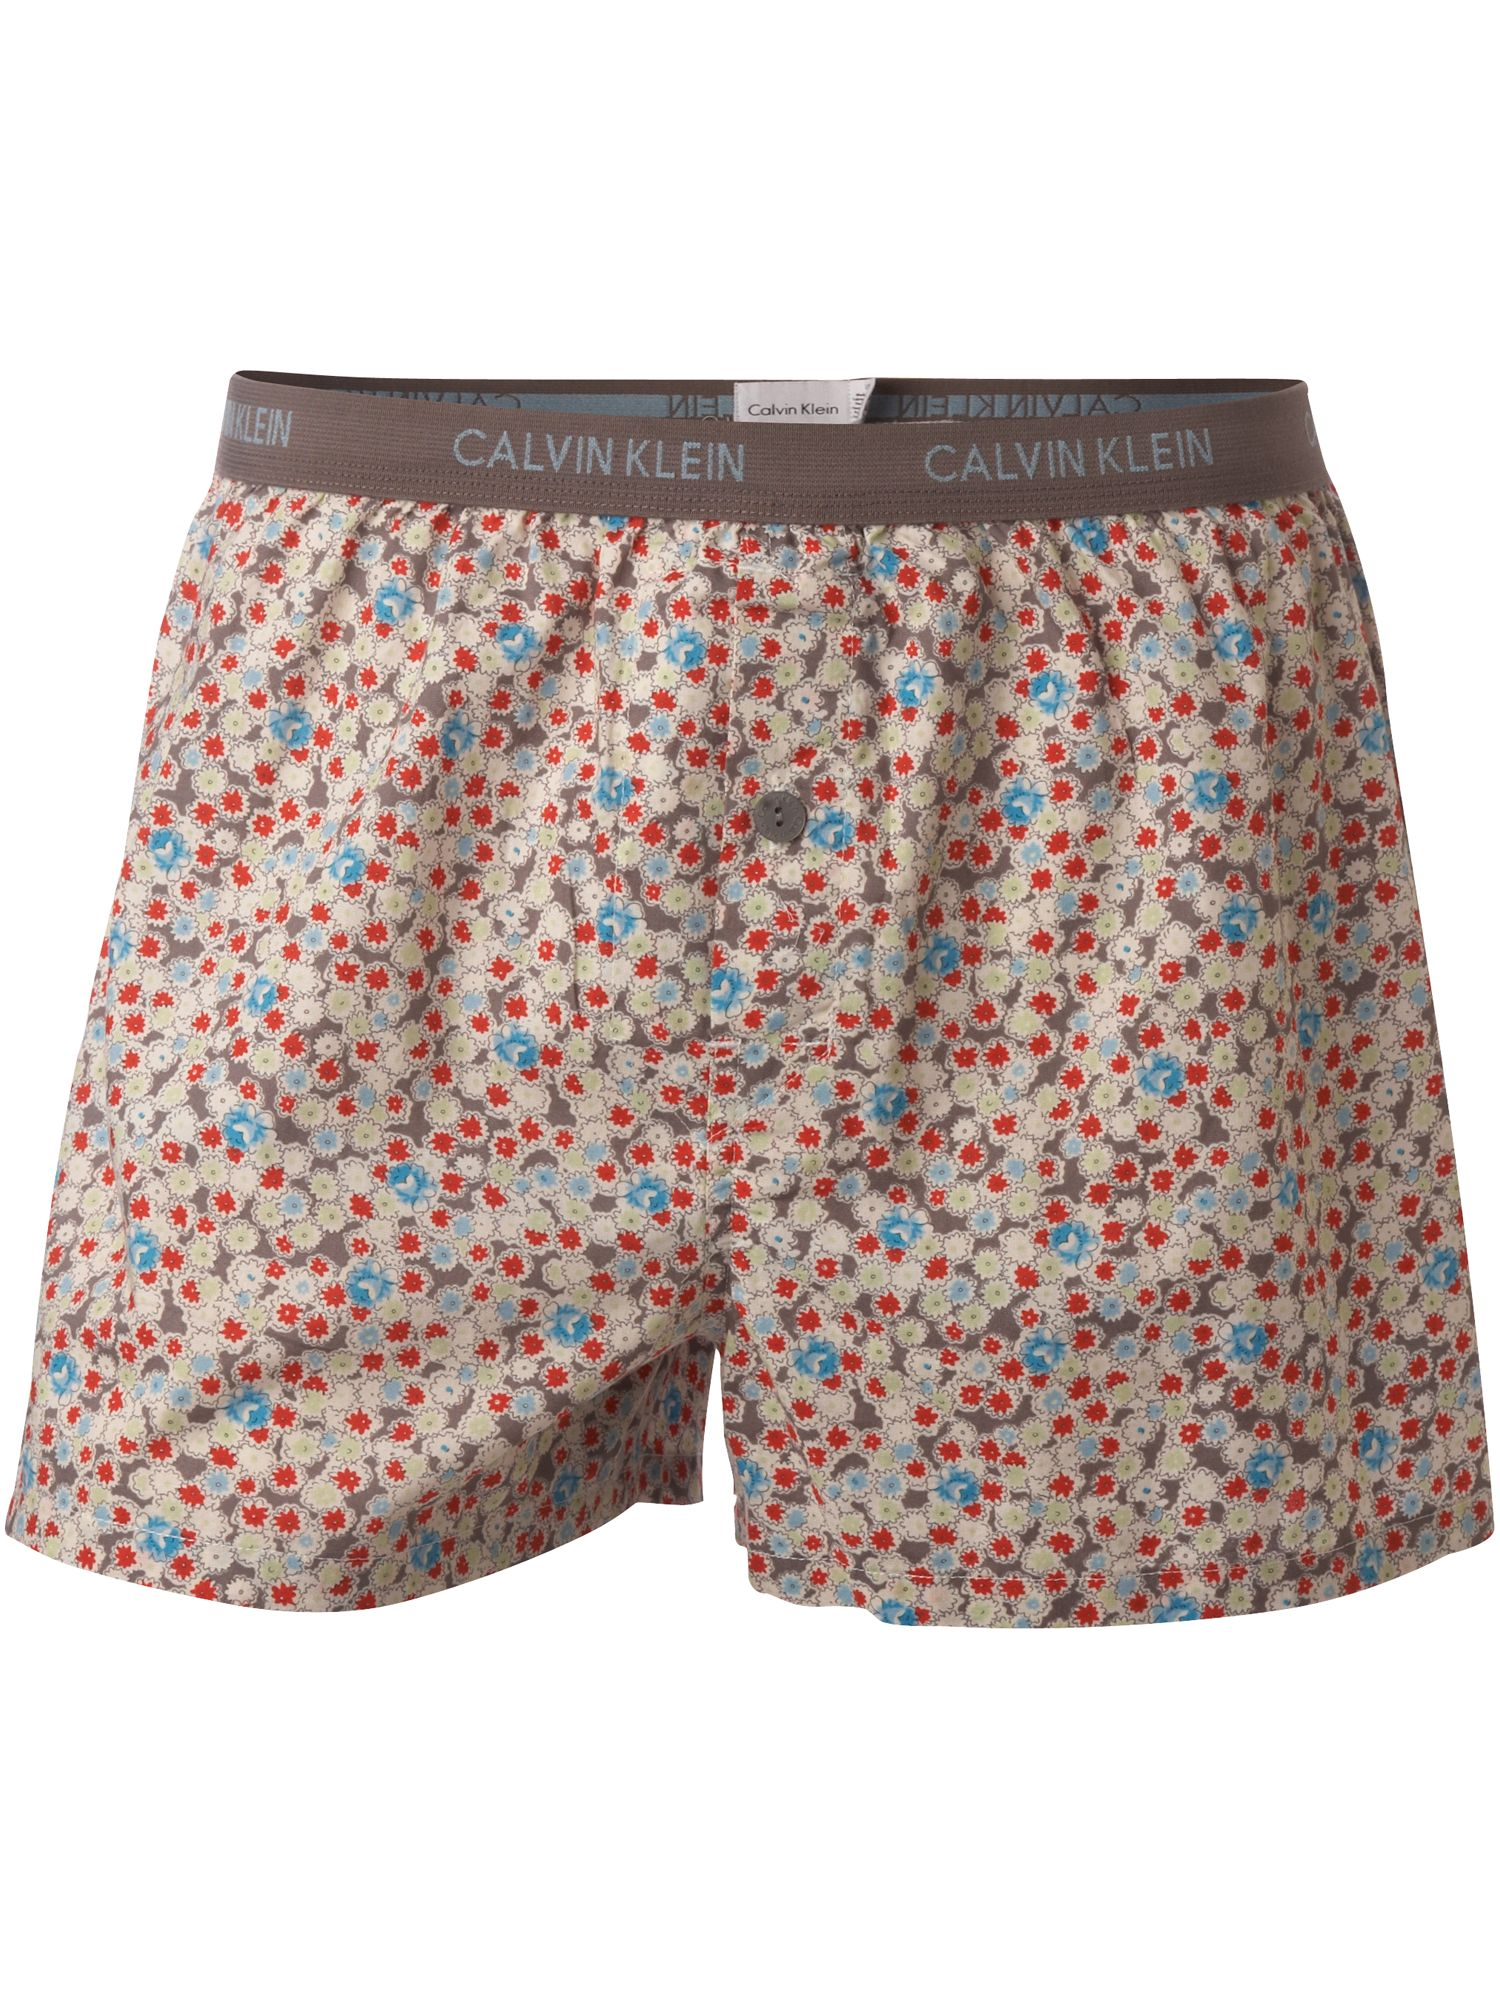 Calvin Klein Antique ditzy pattern woven boxer product image